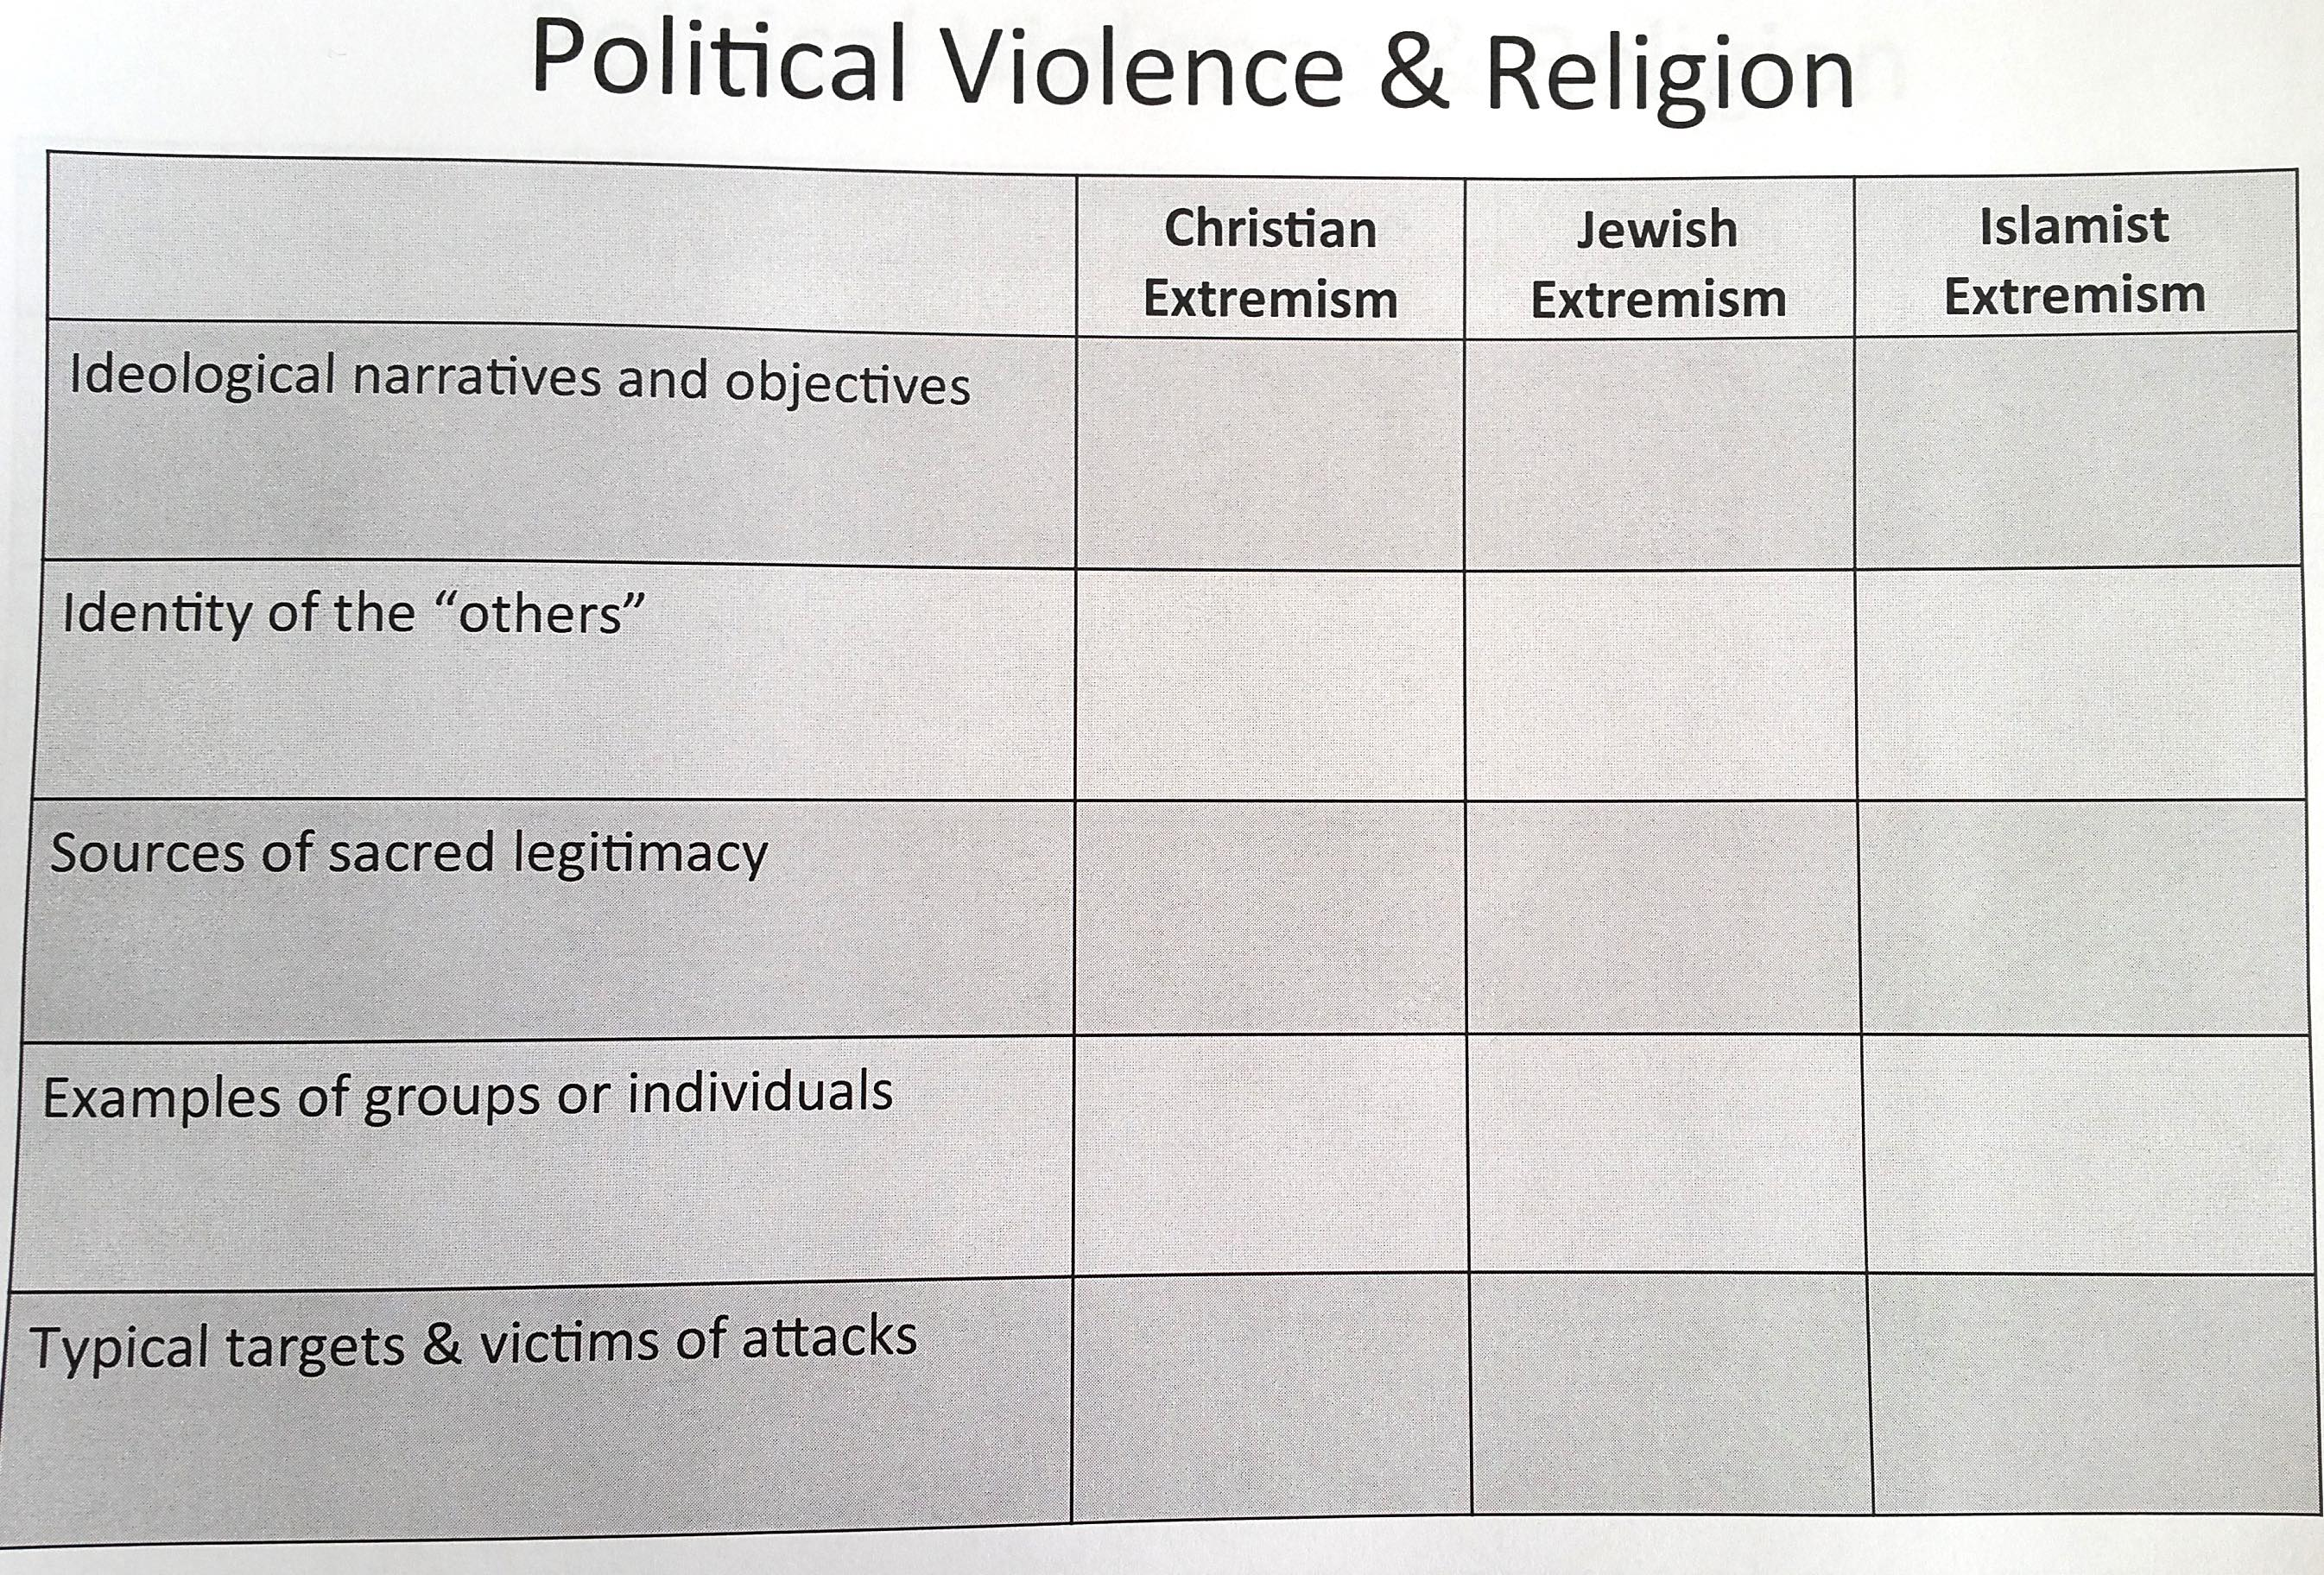 clarification about the links between islam and terrorism this kind of comparative analysis is extremely unpopular among the anti islam crowd but it is crucial to step away from the kinds of inferred cultural